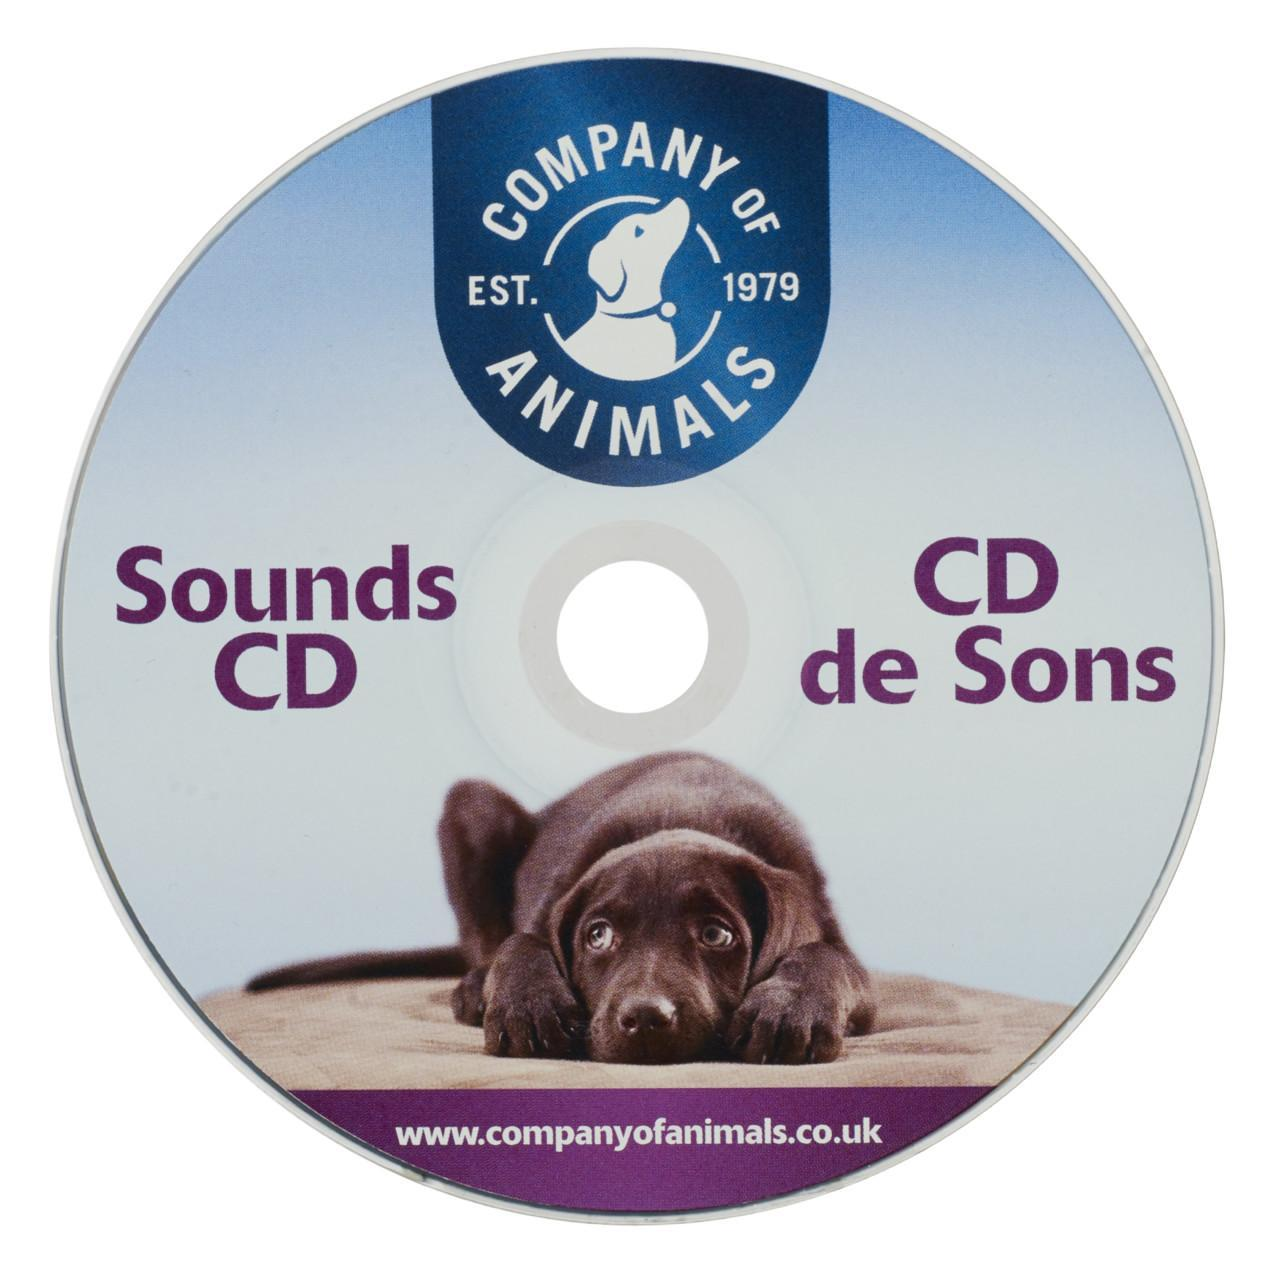 An image of Clix Noises & Sounds CD